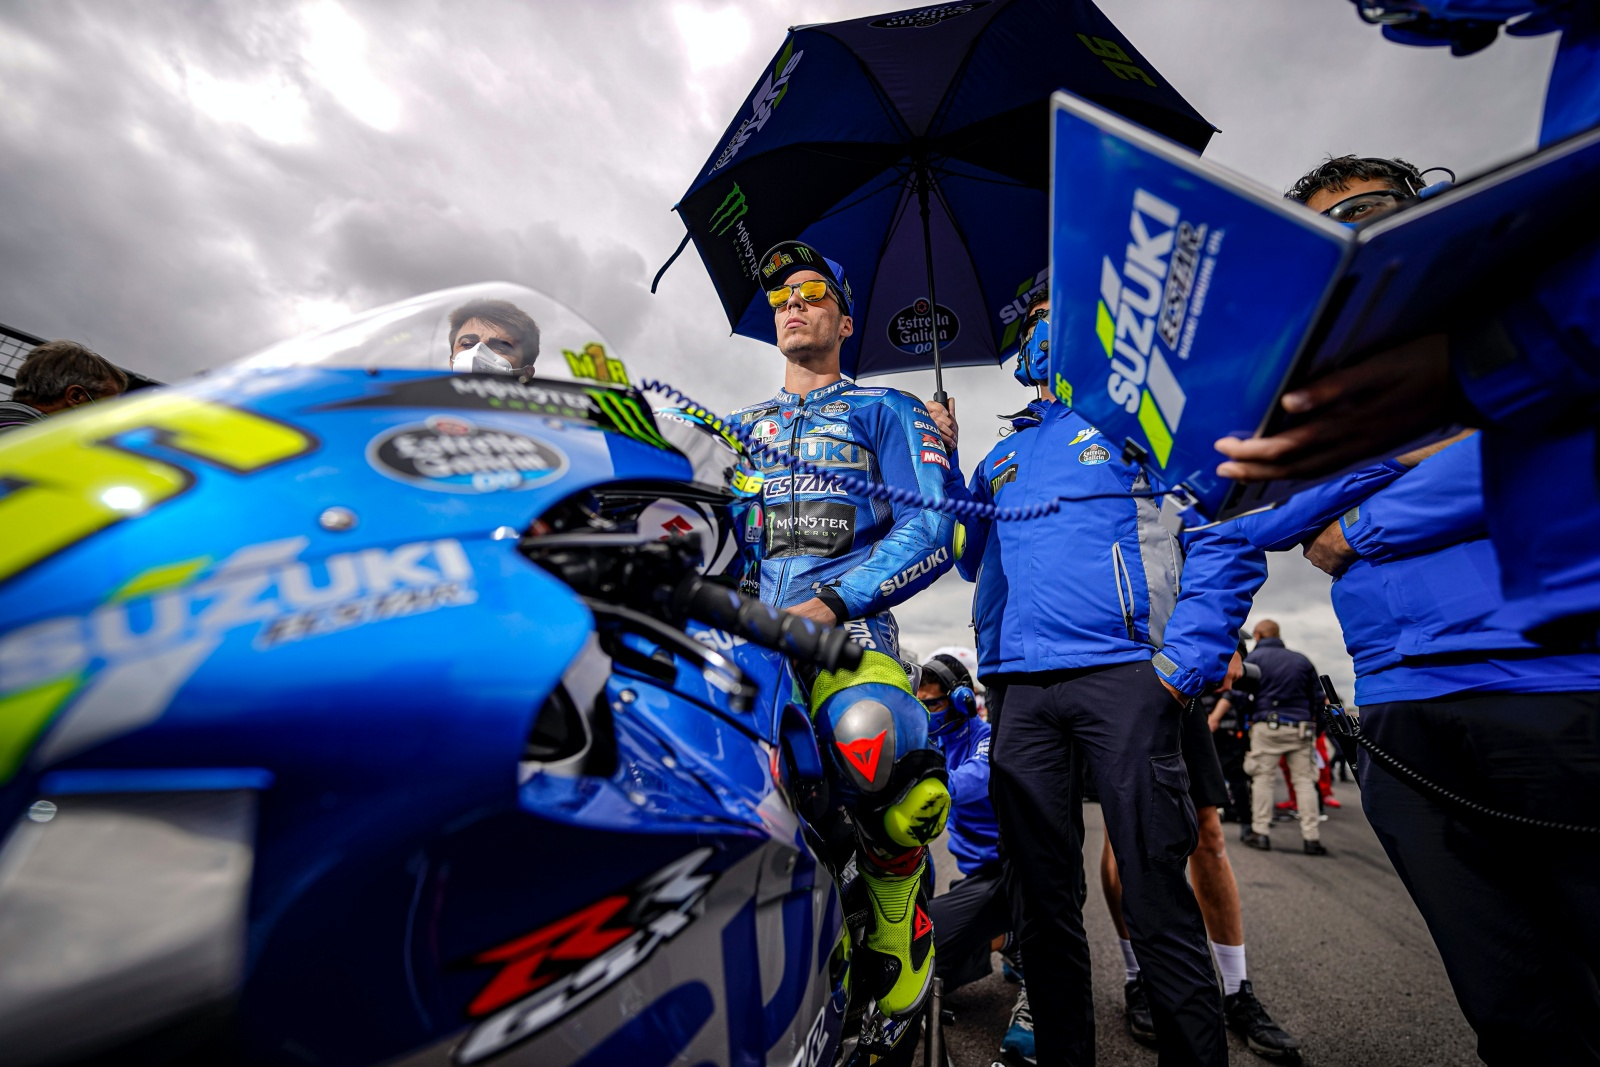 RINS SHINES IN SILVERSTONE TO TAKE SECOND PLACE